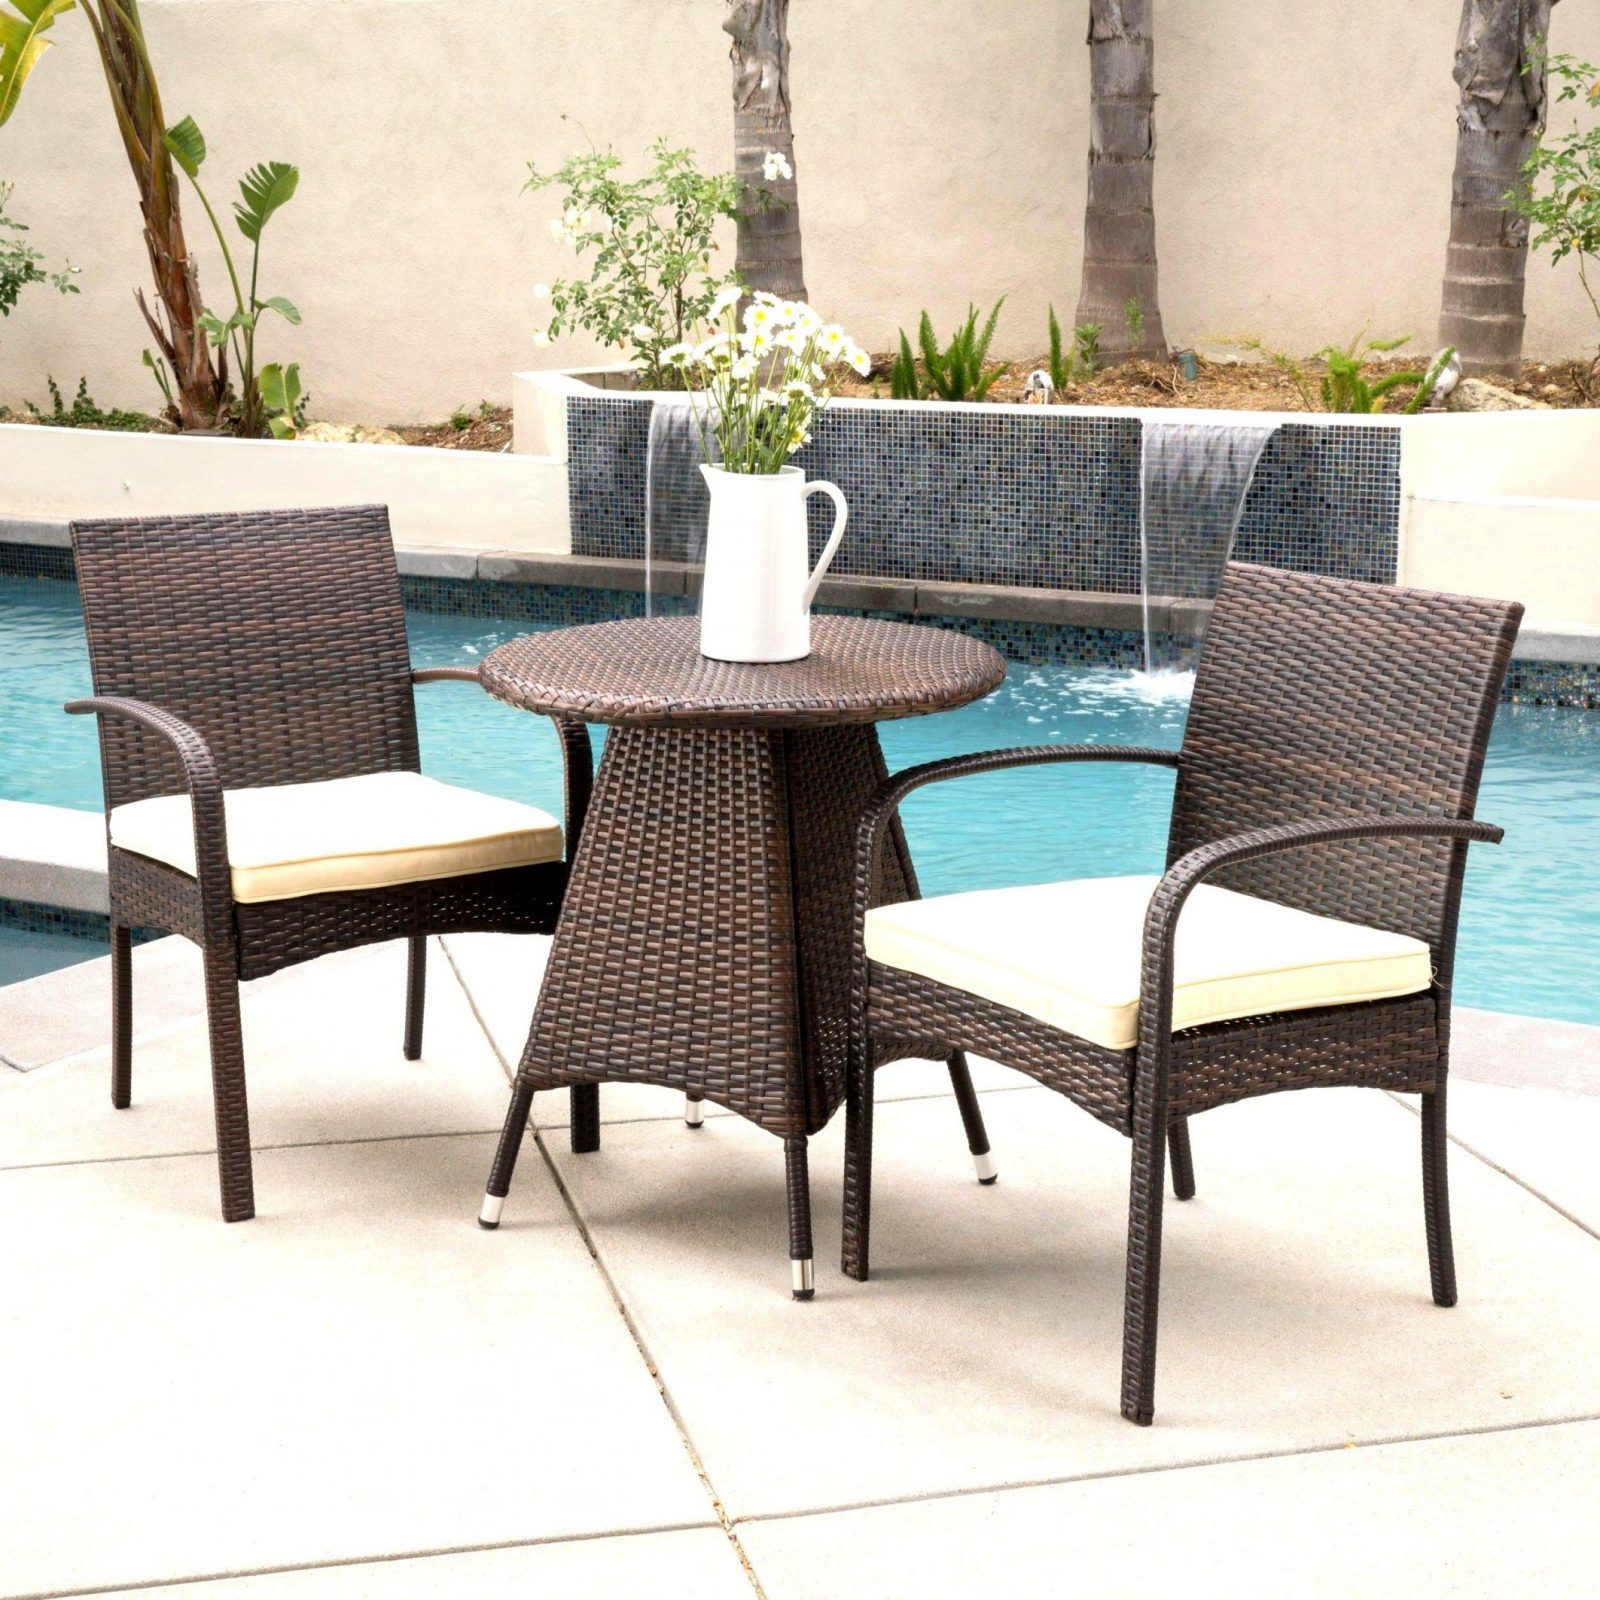 Lounge Polster Nach Mass Awesome 25 New Rattan Lounge Chair Cushions von Lounge Polster Nach Mass Bild